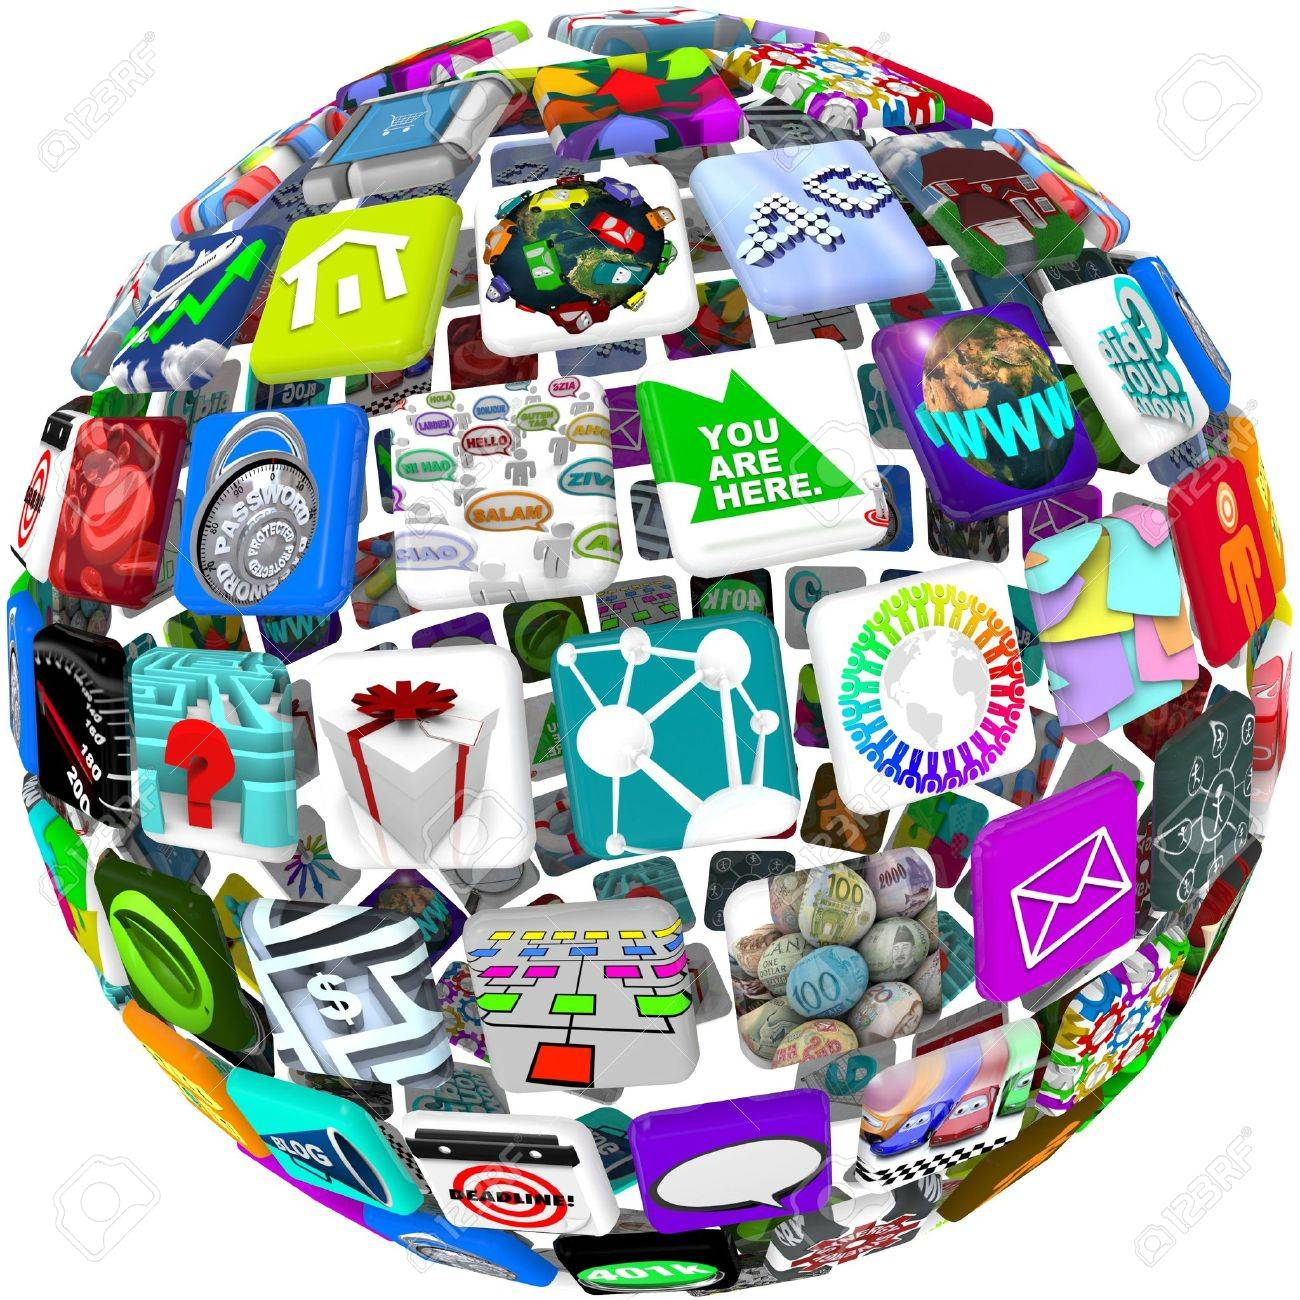 Many smart phone application icons arranged in a spherical shape Stock Photo - 8078205